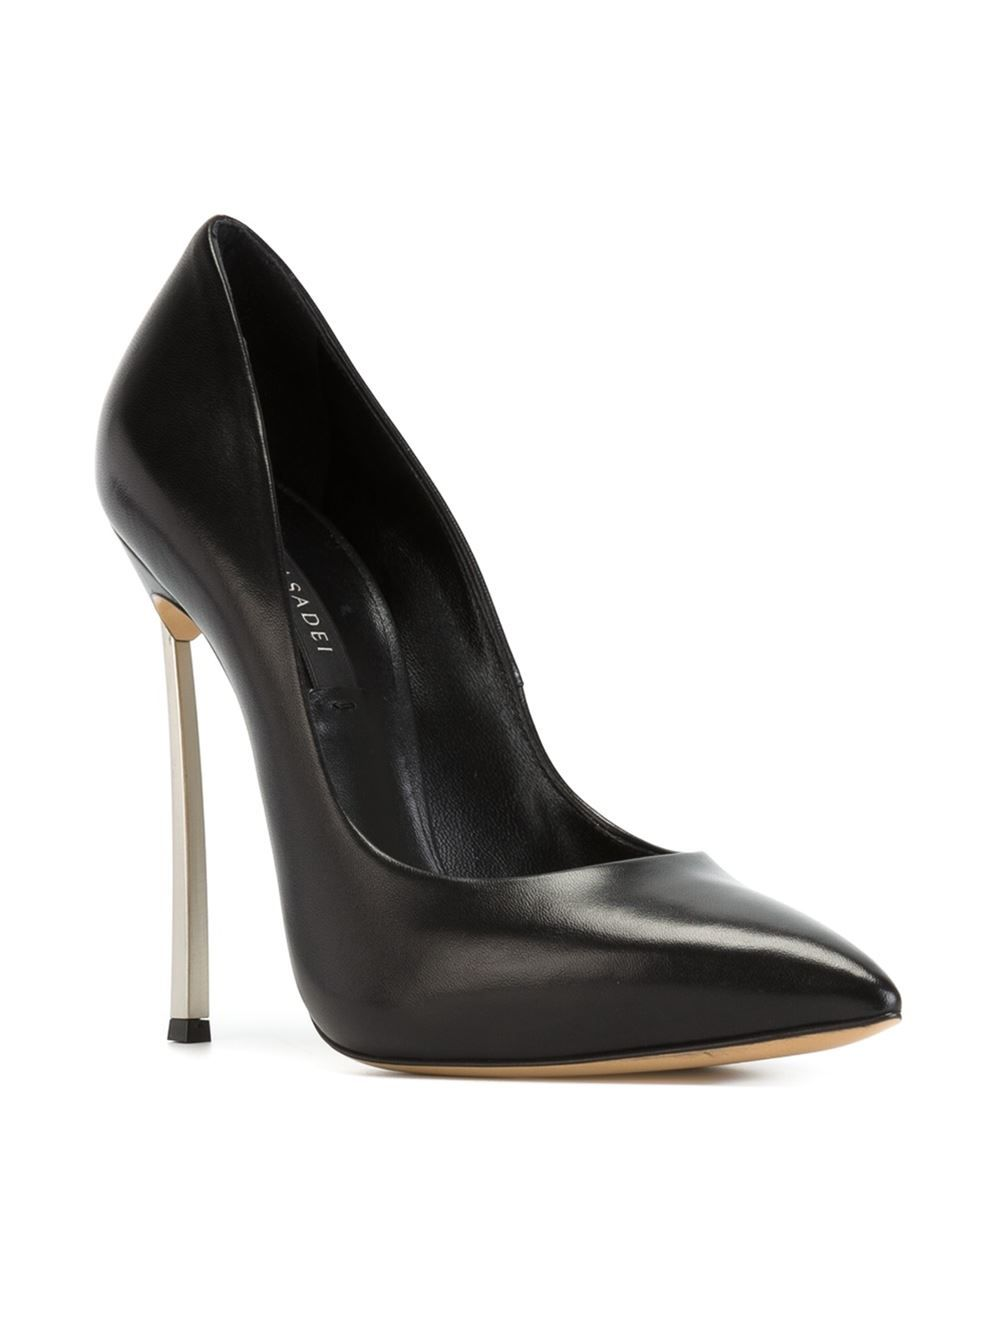 cf29b877e7 Shop a great range of women's designer pumps at Farfetch. Discover 2000  designers for high heeled pump shoes and court shoes for women